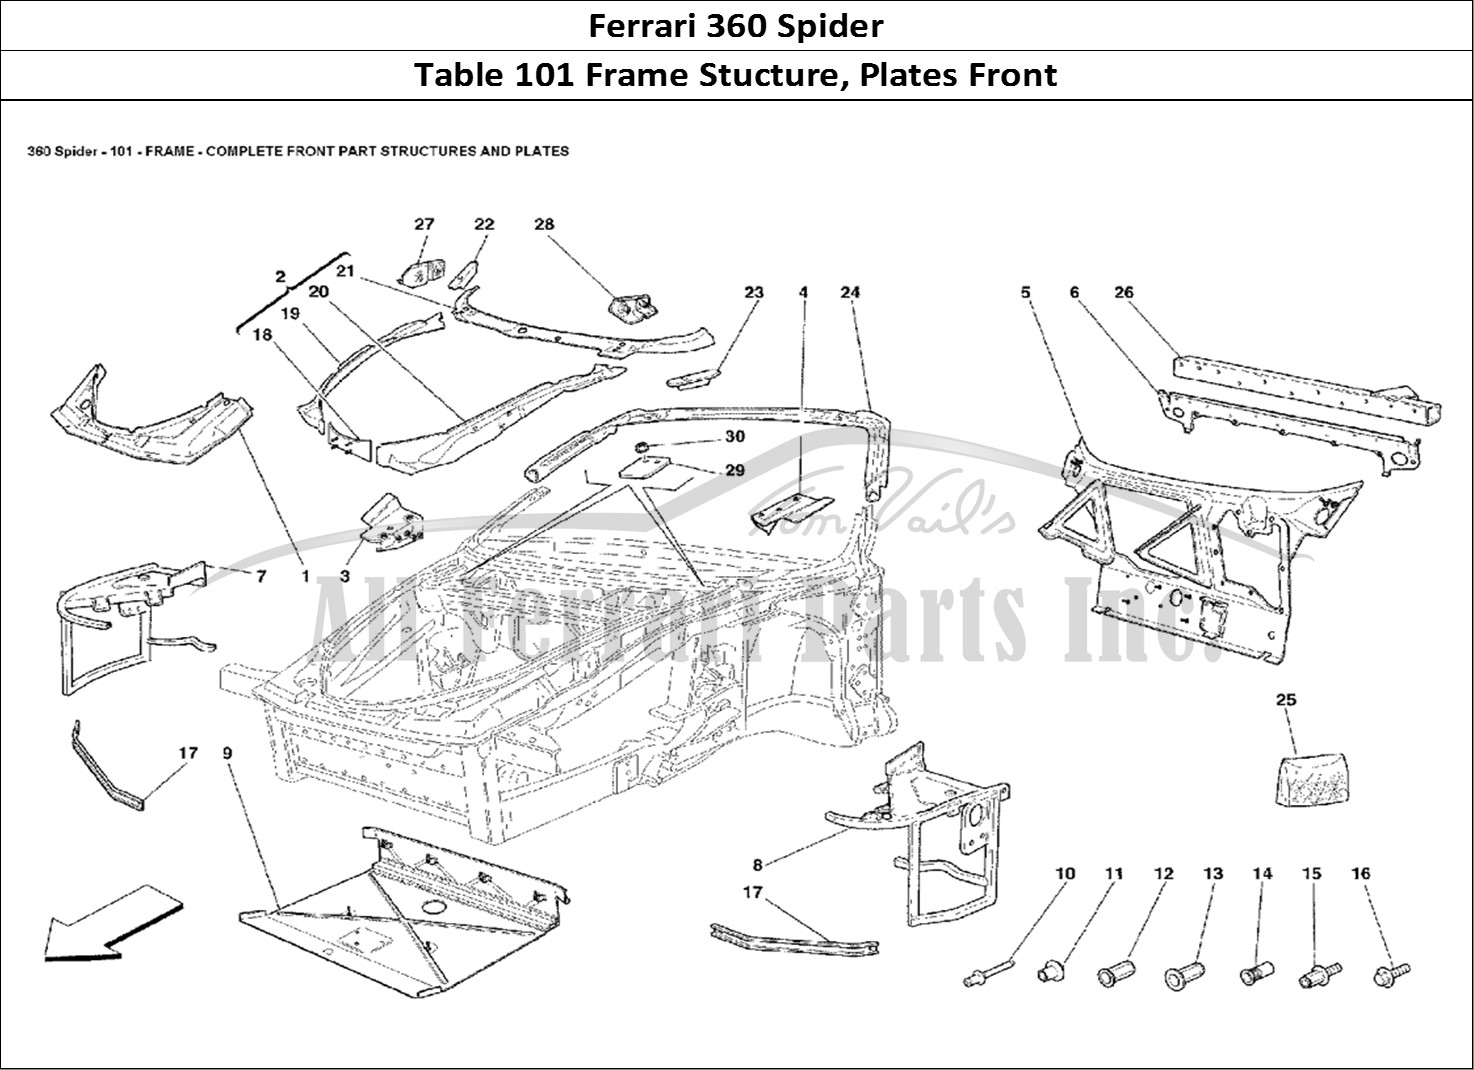 Buy original Ferrari 360 Spider 101 Frame Stucture, Plates